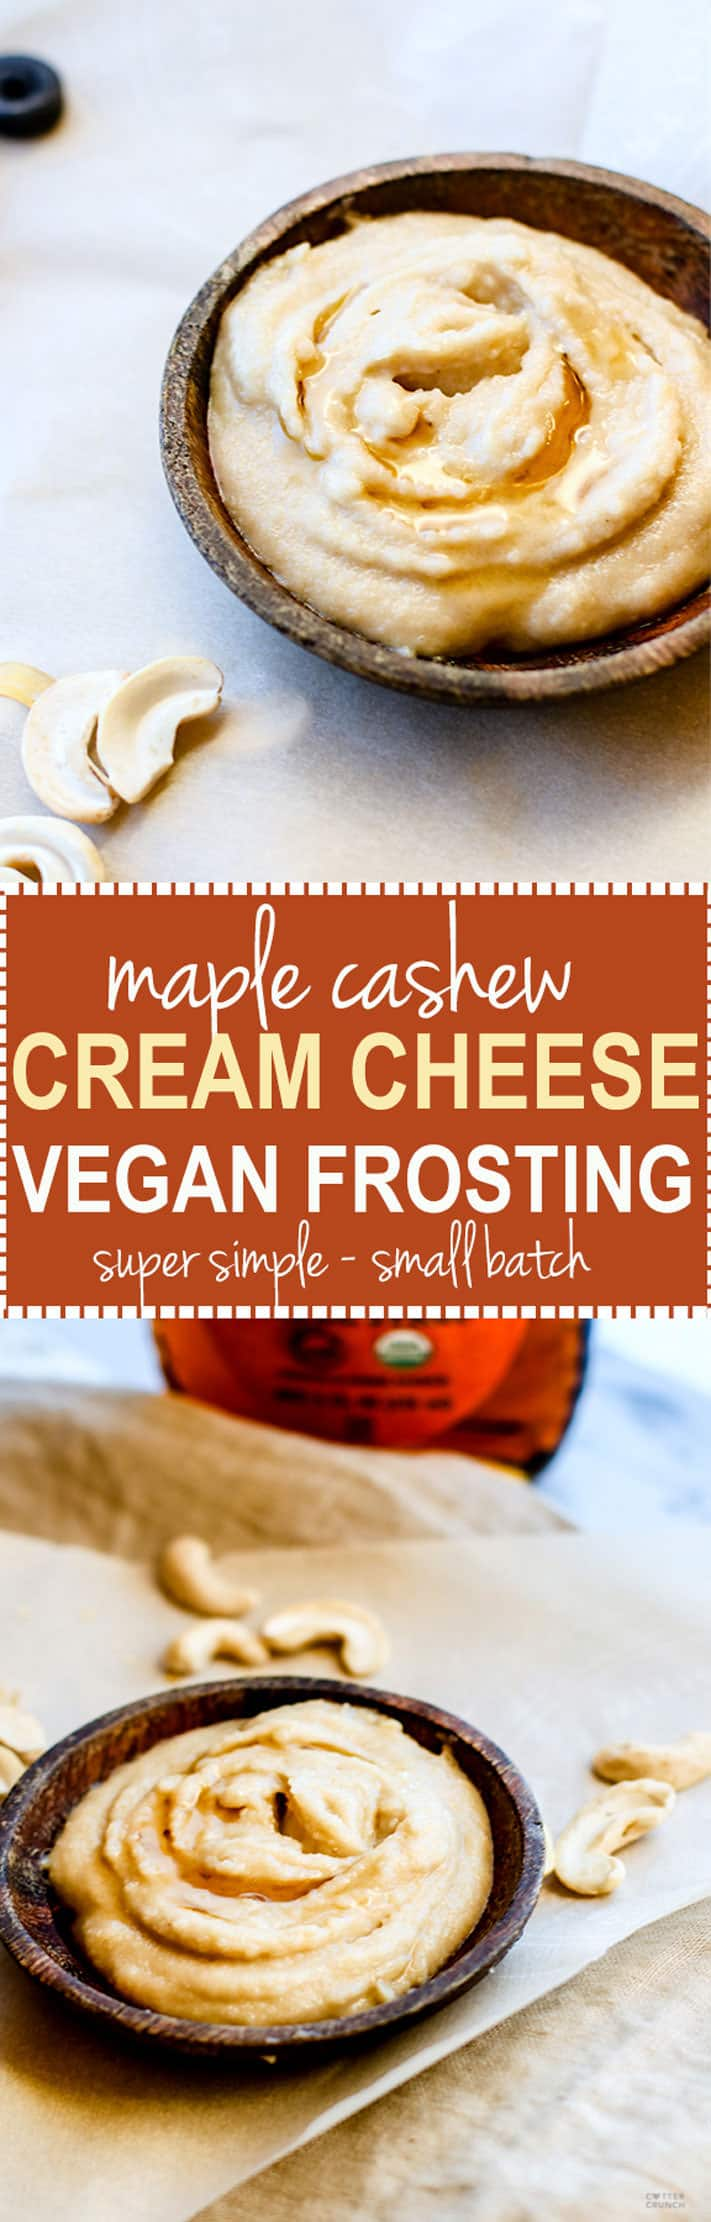 Small batch maple cashew cream cheese frosting vegan - Delicious easy make vegan desserts ...